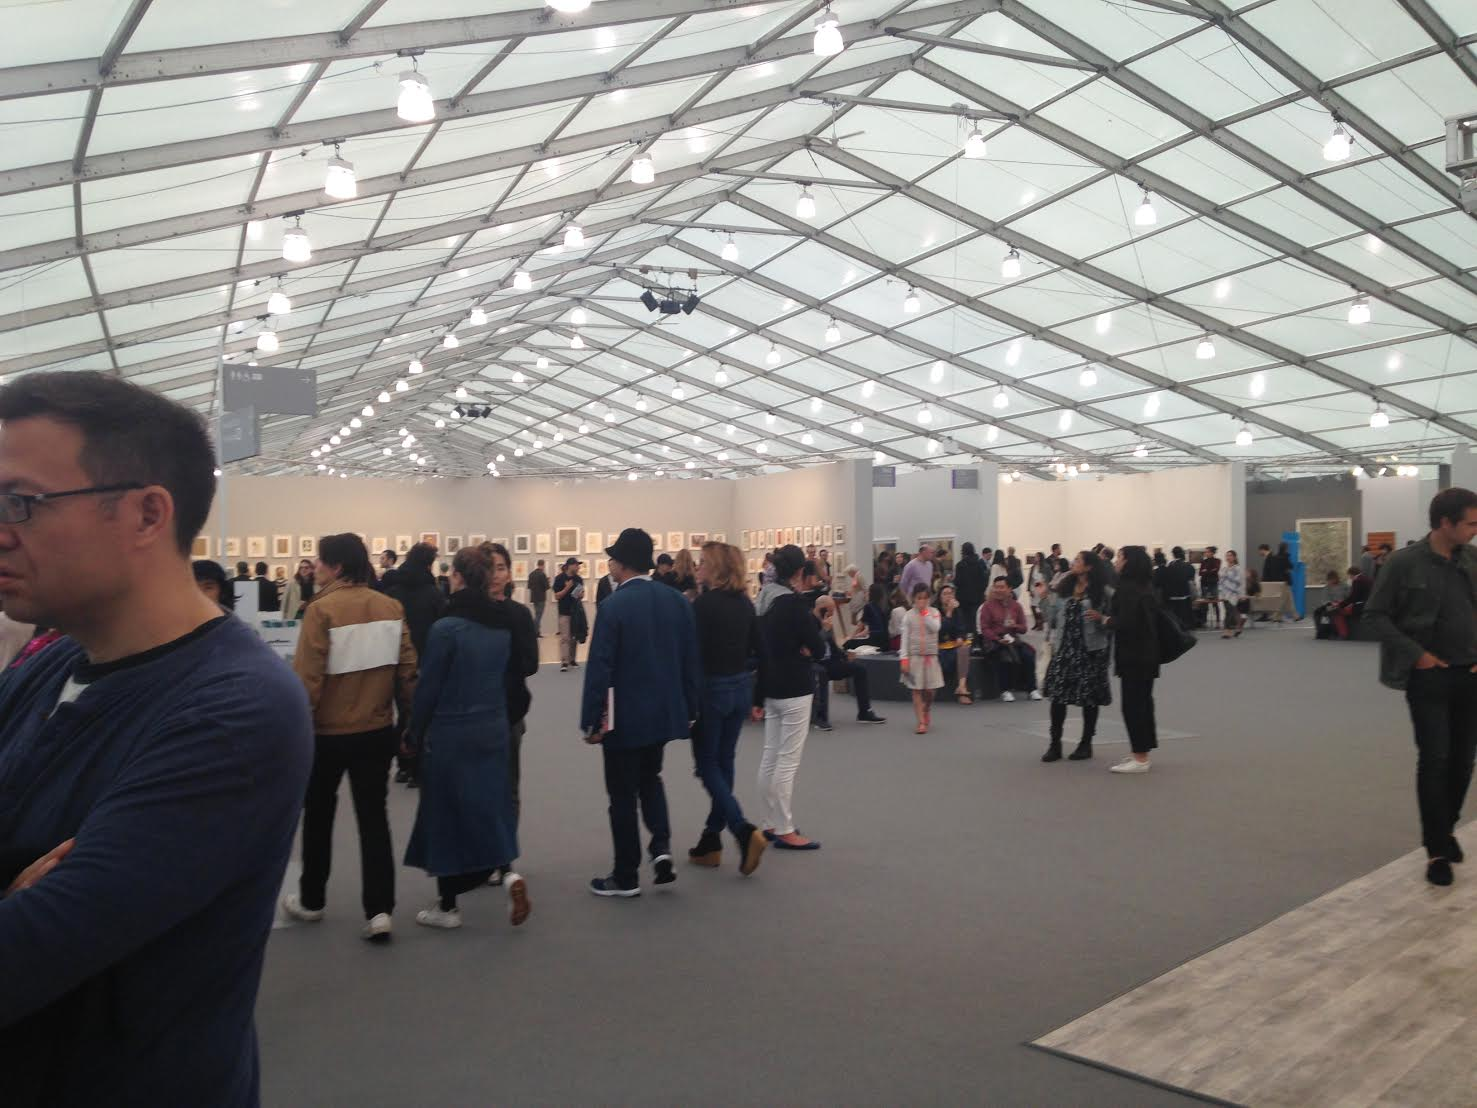 A photo taken of the scene at Frieze Art Fair in New York